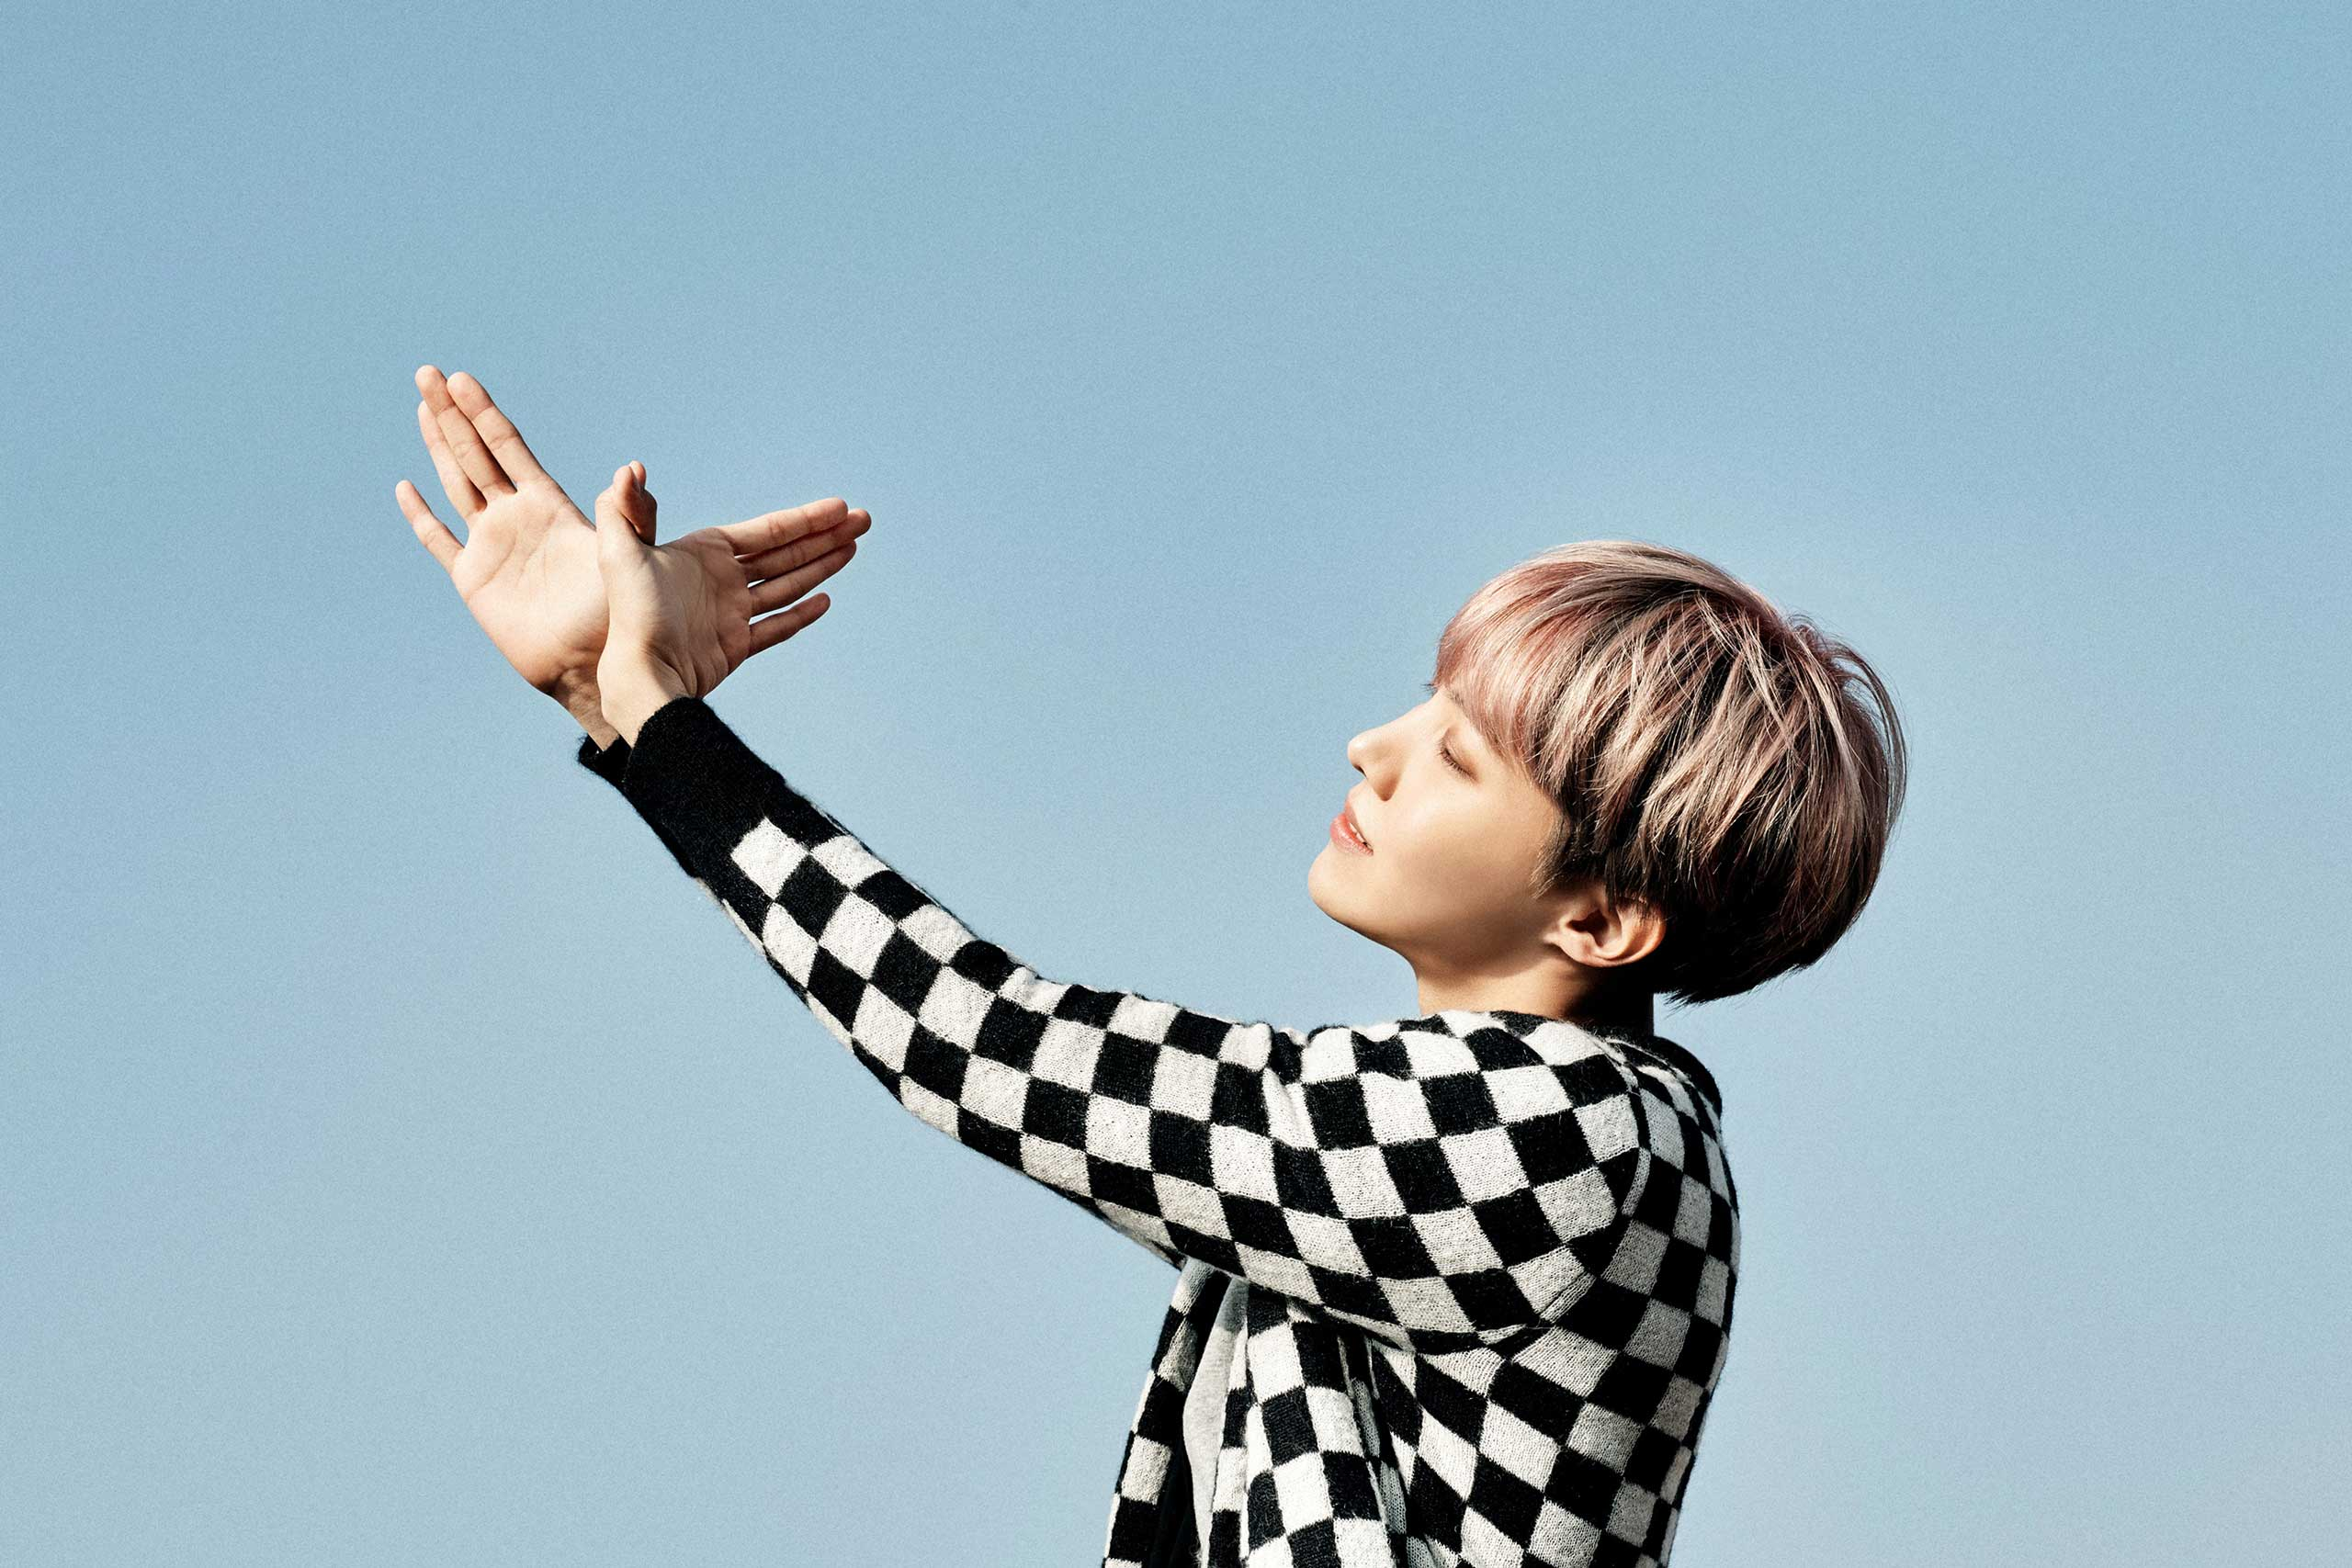 Bts In New Concept Photos For You Never Walk Alone Bts Photo